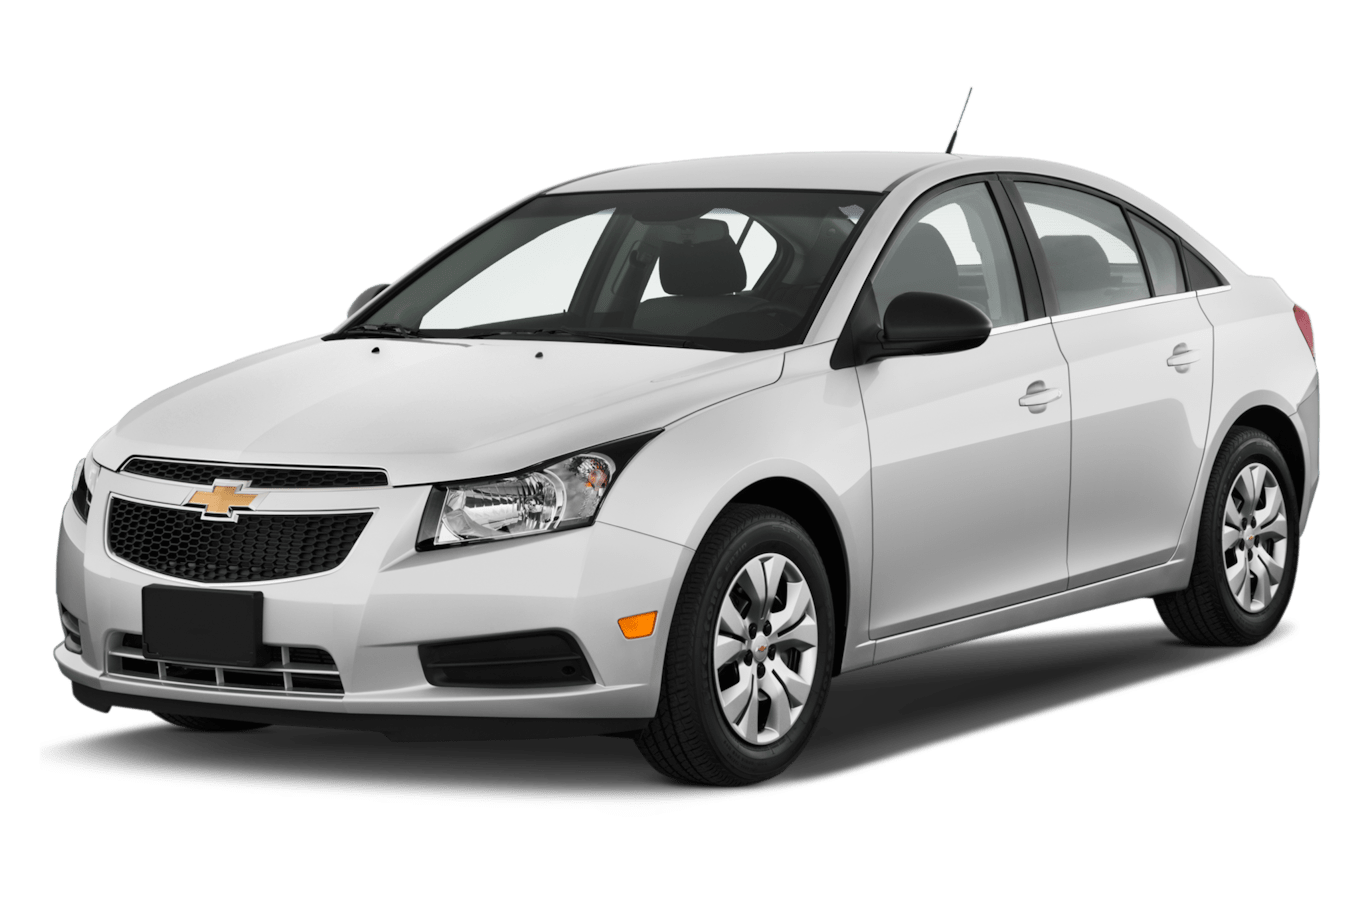 2014 chevrolet cruze reviews research cruze prices specs diagram likewise chevy cruze 1 4 turbo engine in addition ecotec [ 392:261 x 1360 Pixel ]